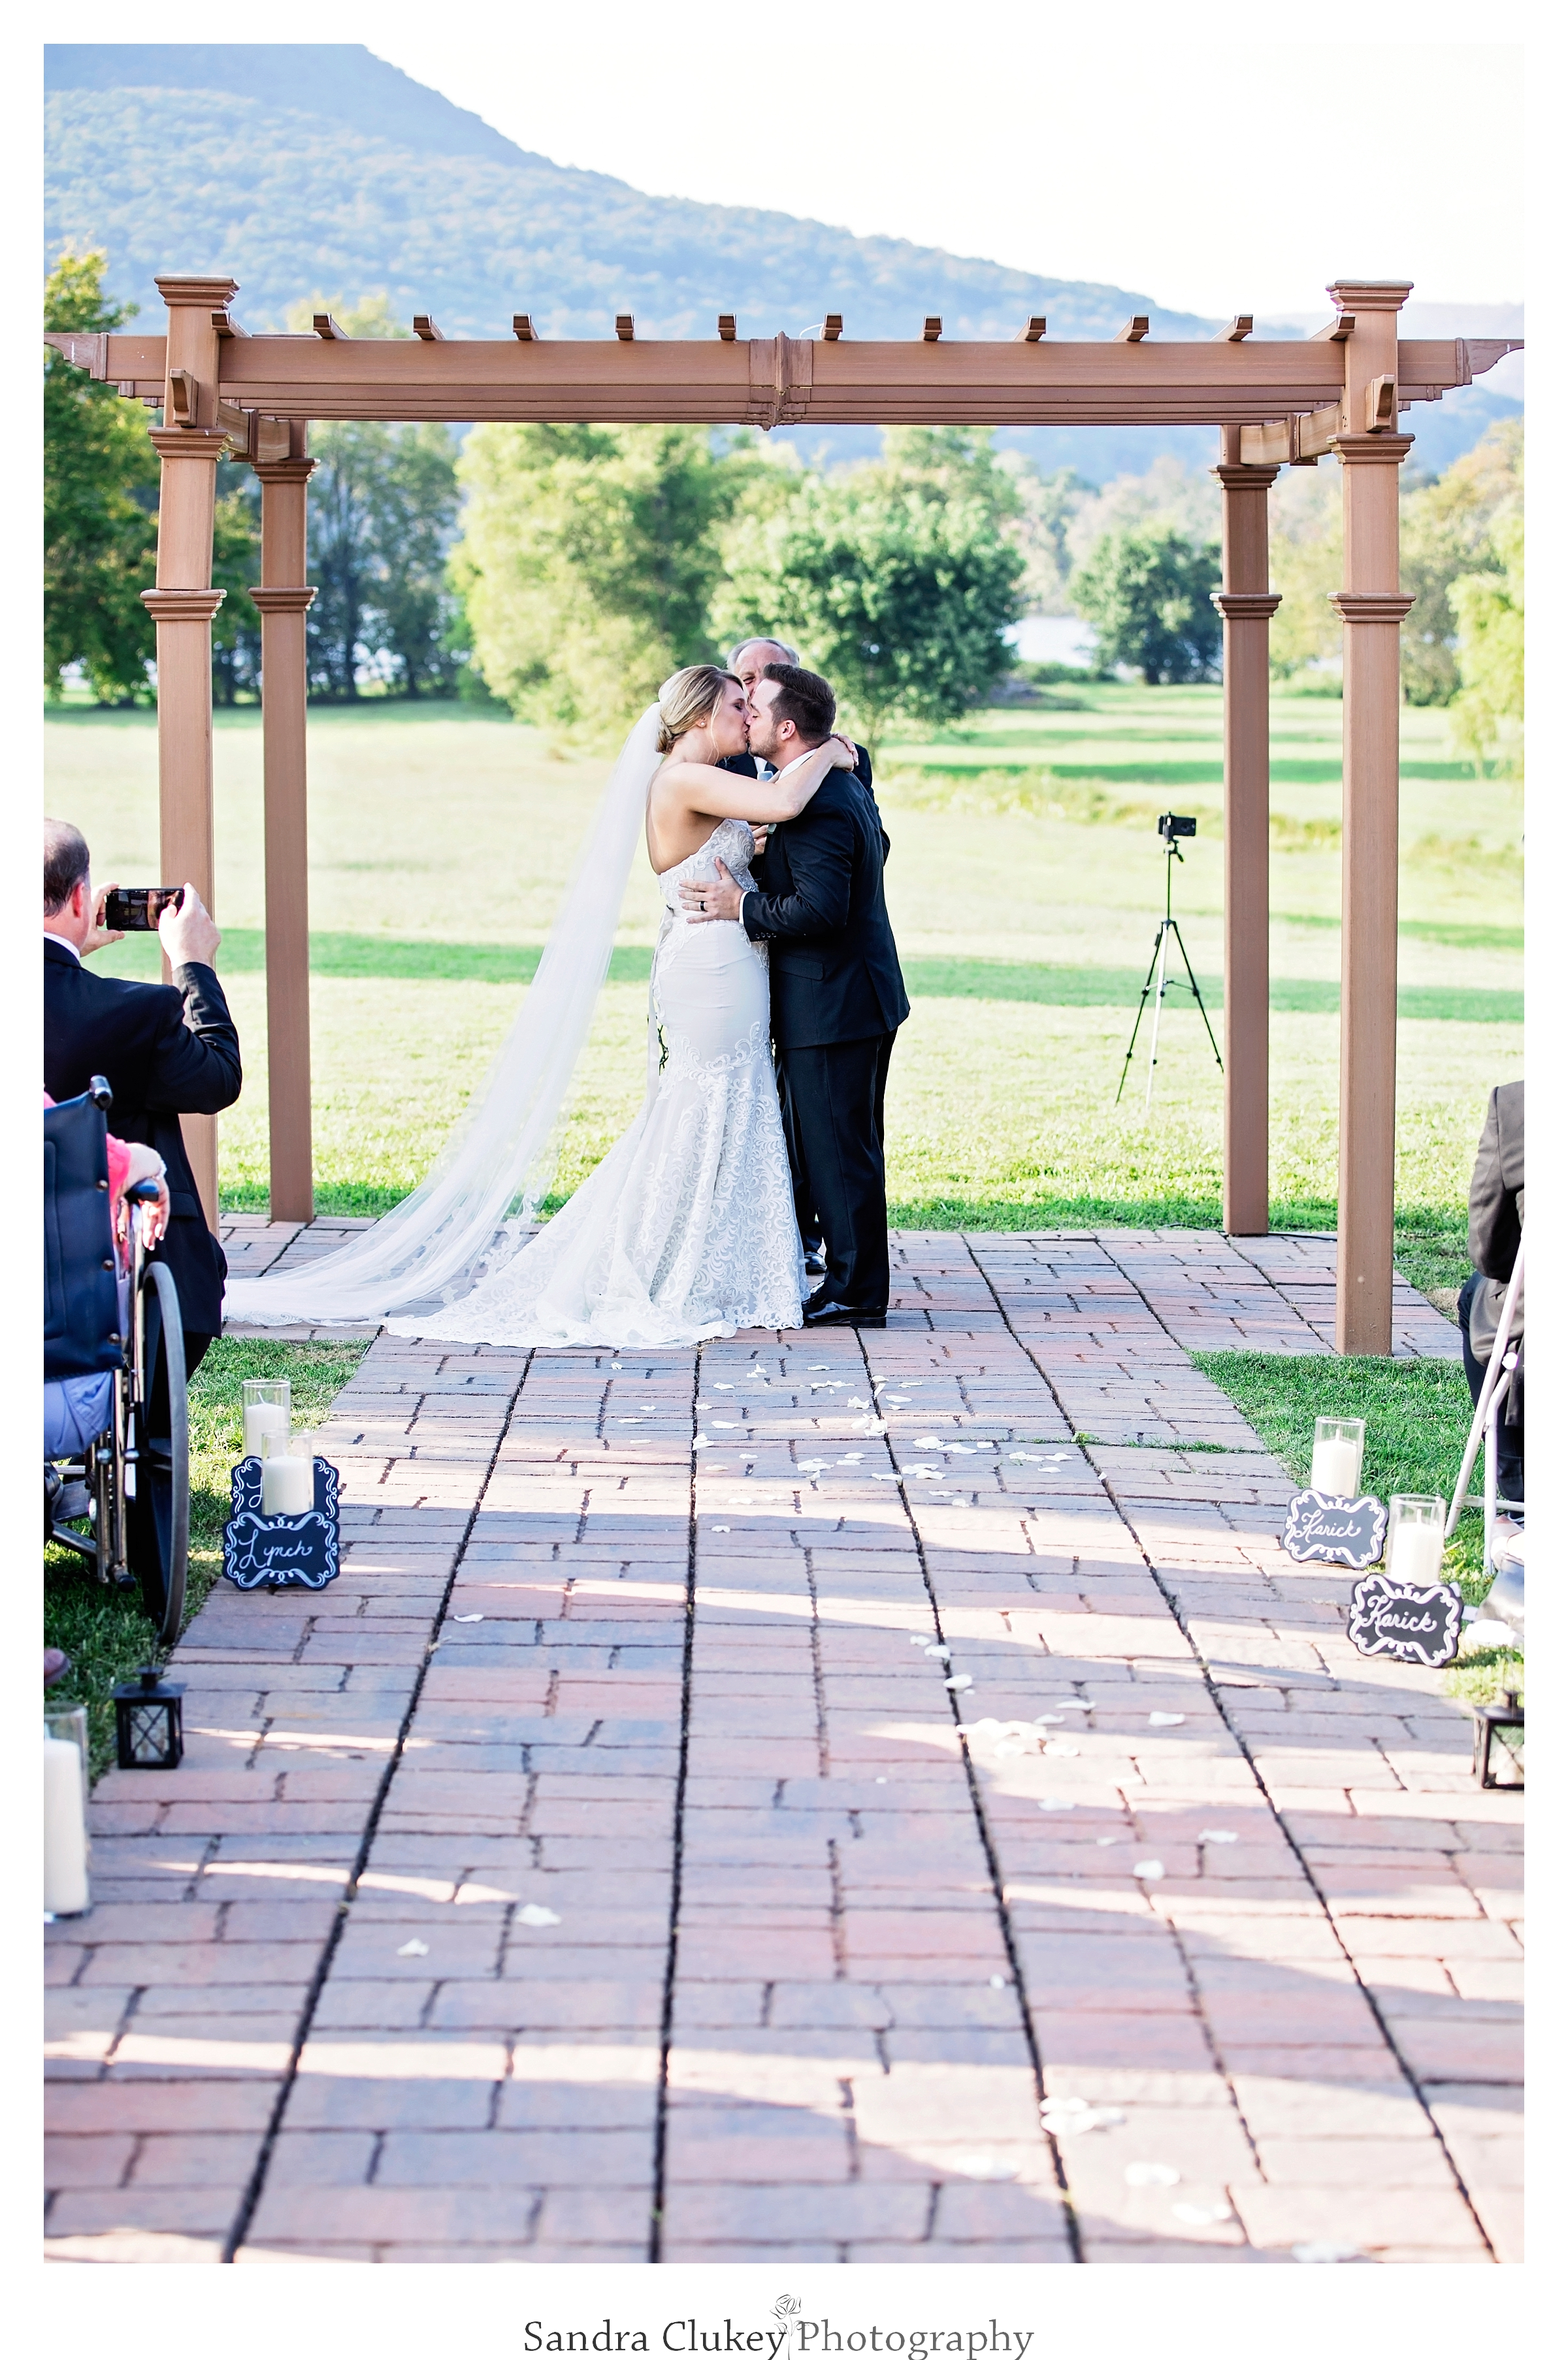 You may kiss the bride! Tennessee RiverPlace, Chattanooga TN